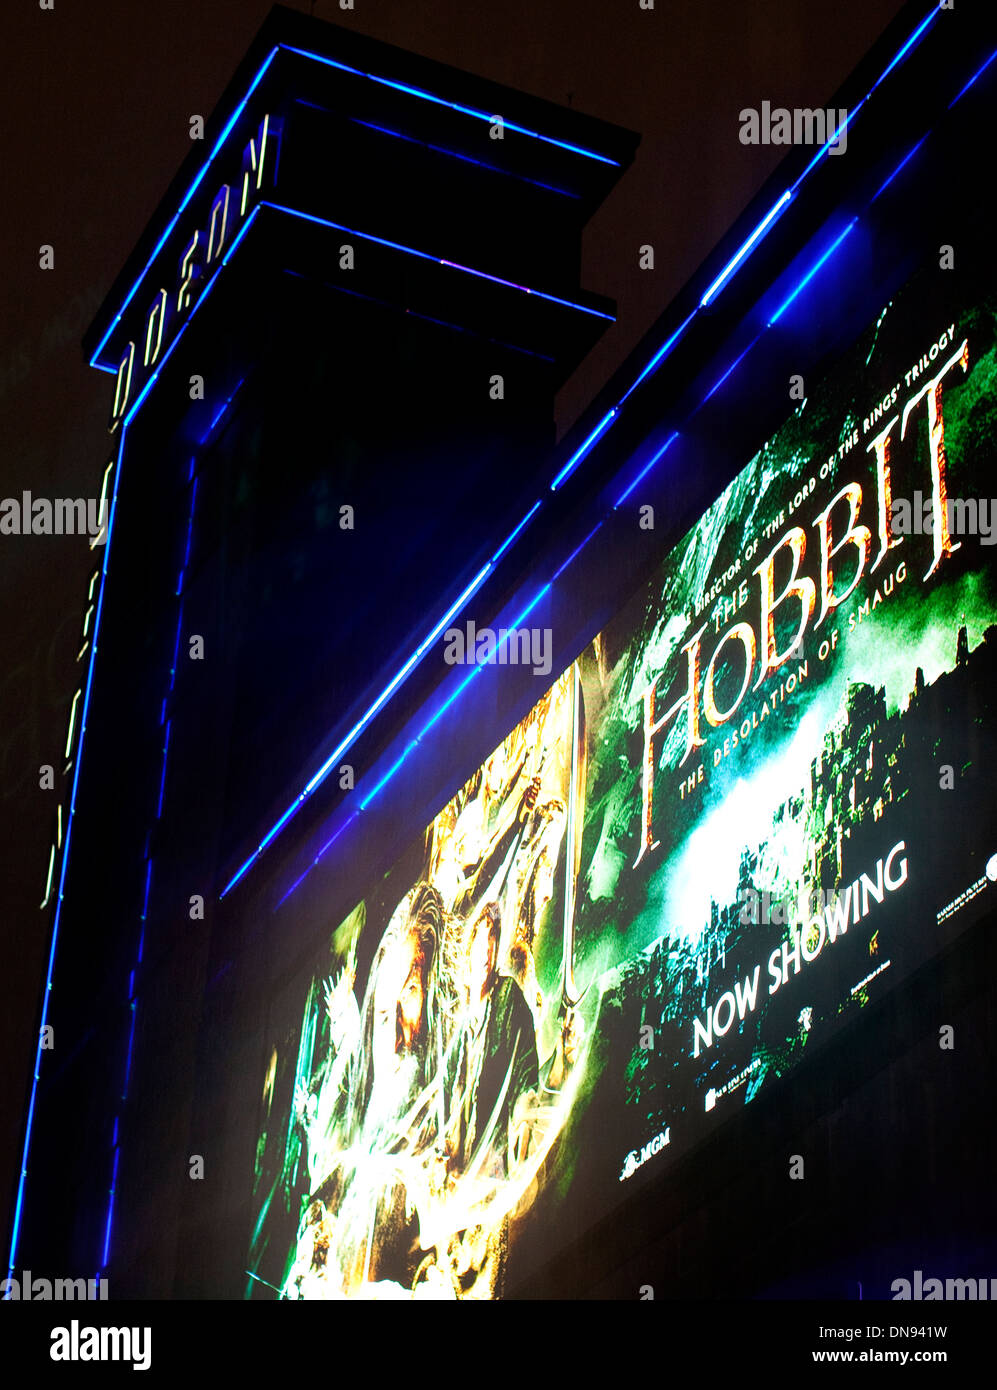 'The Hobbit - The Desolation of Smaug' at Odeon Leicester Square, London - Stock Image